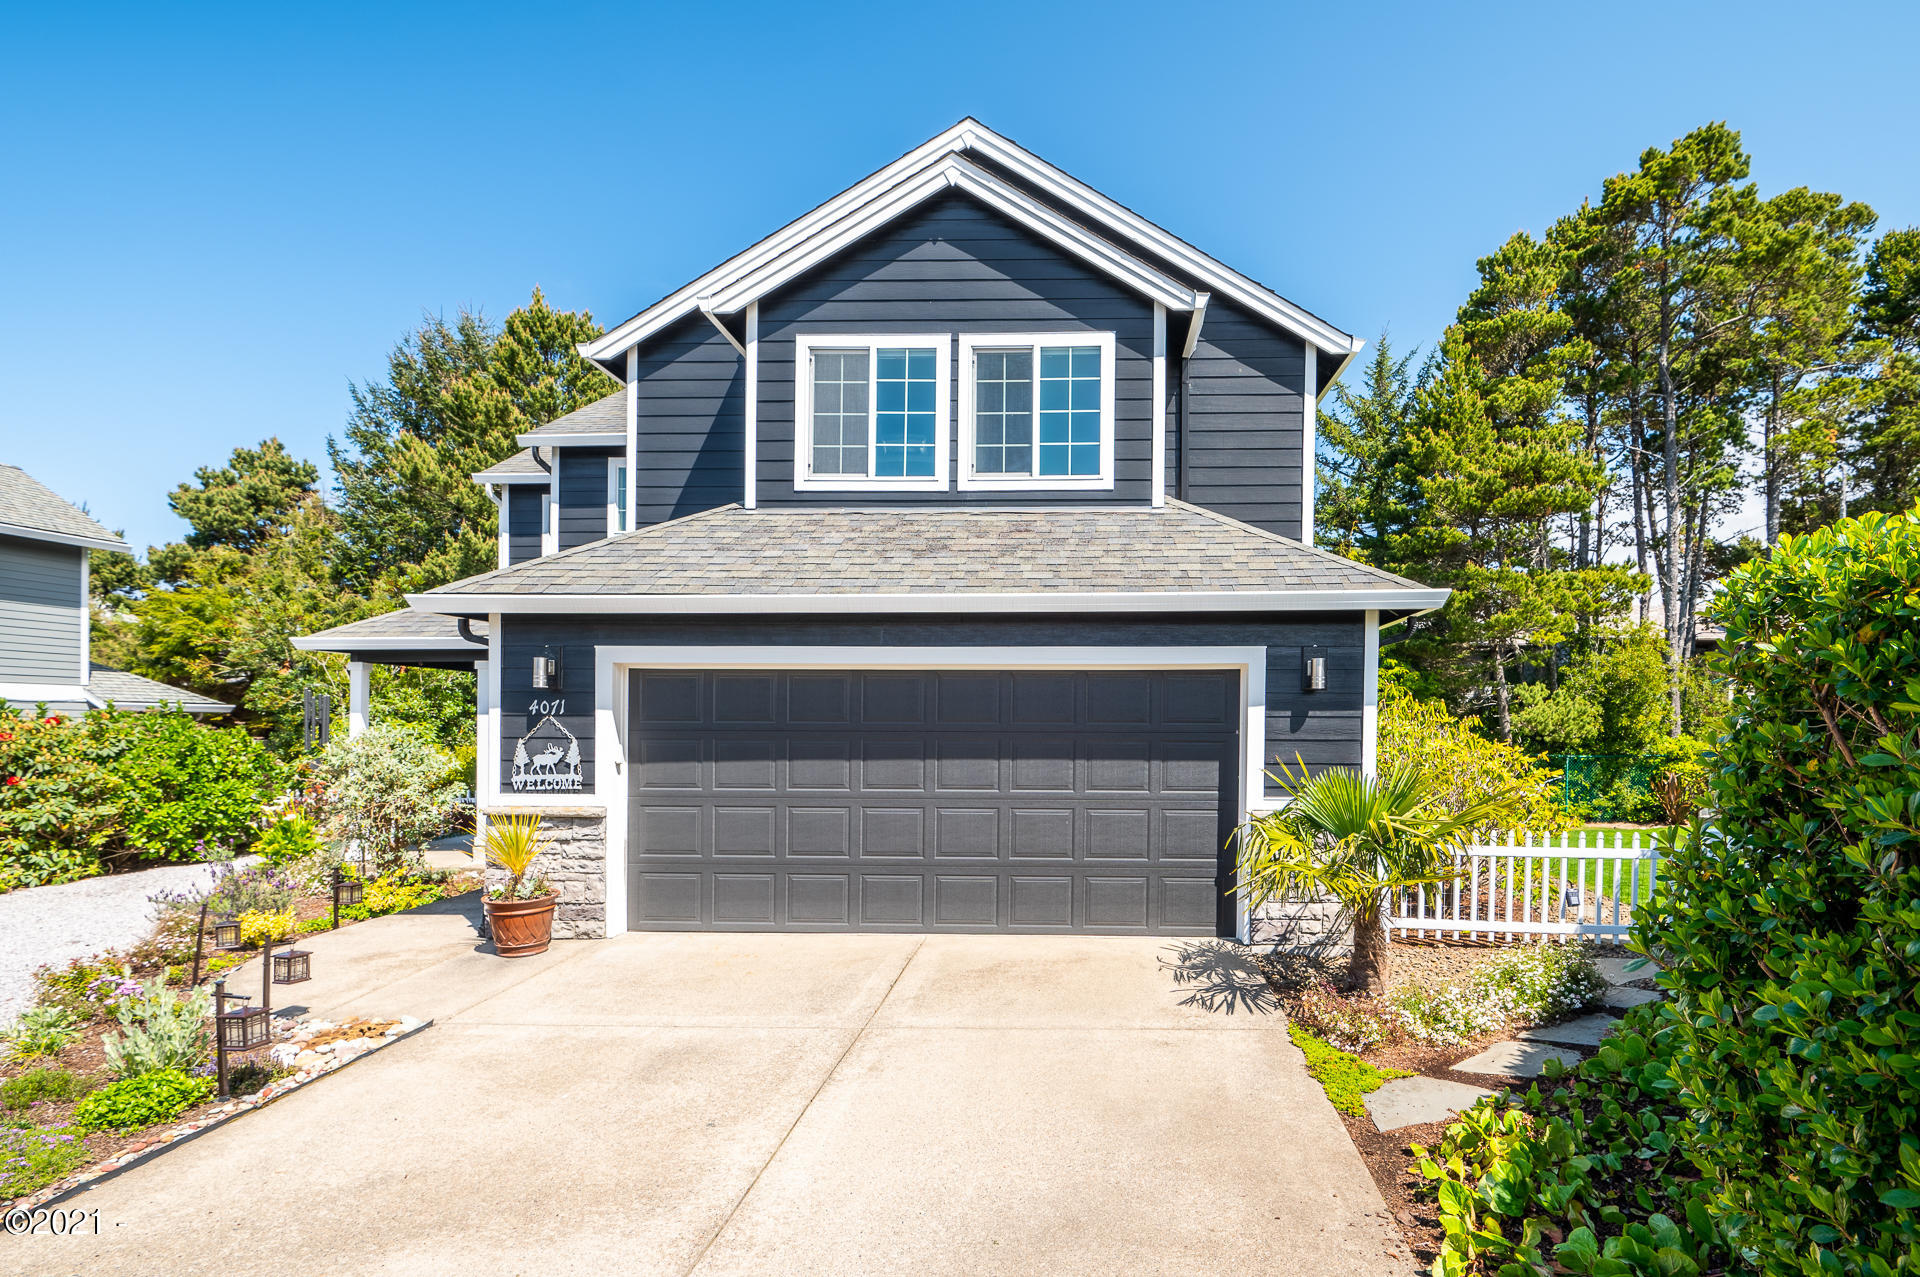 4071 Evergreen Ave, Depoe Bay, OR 97341 - _Z268680-HDR-RMLS